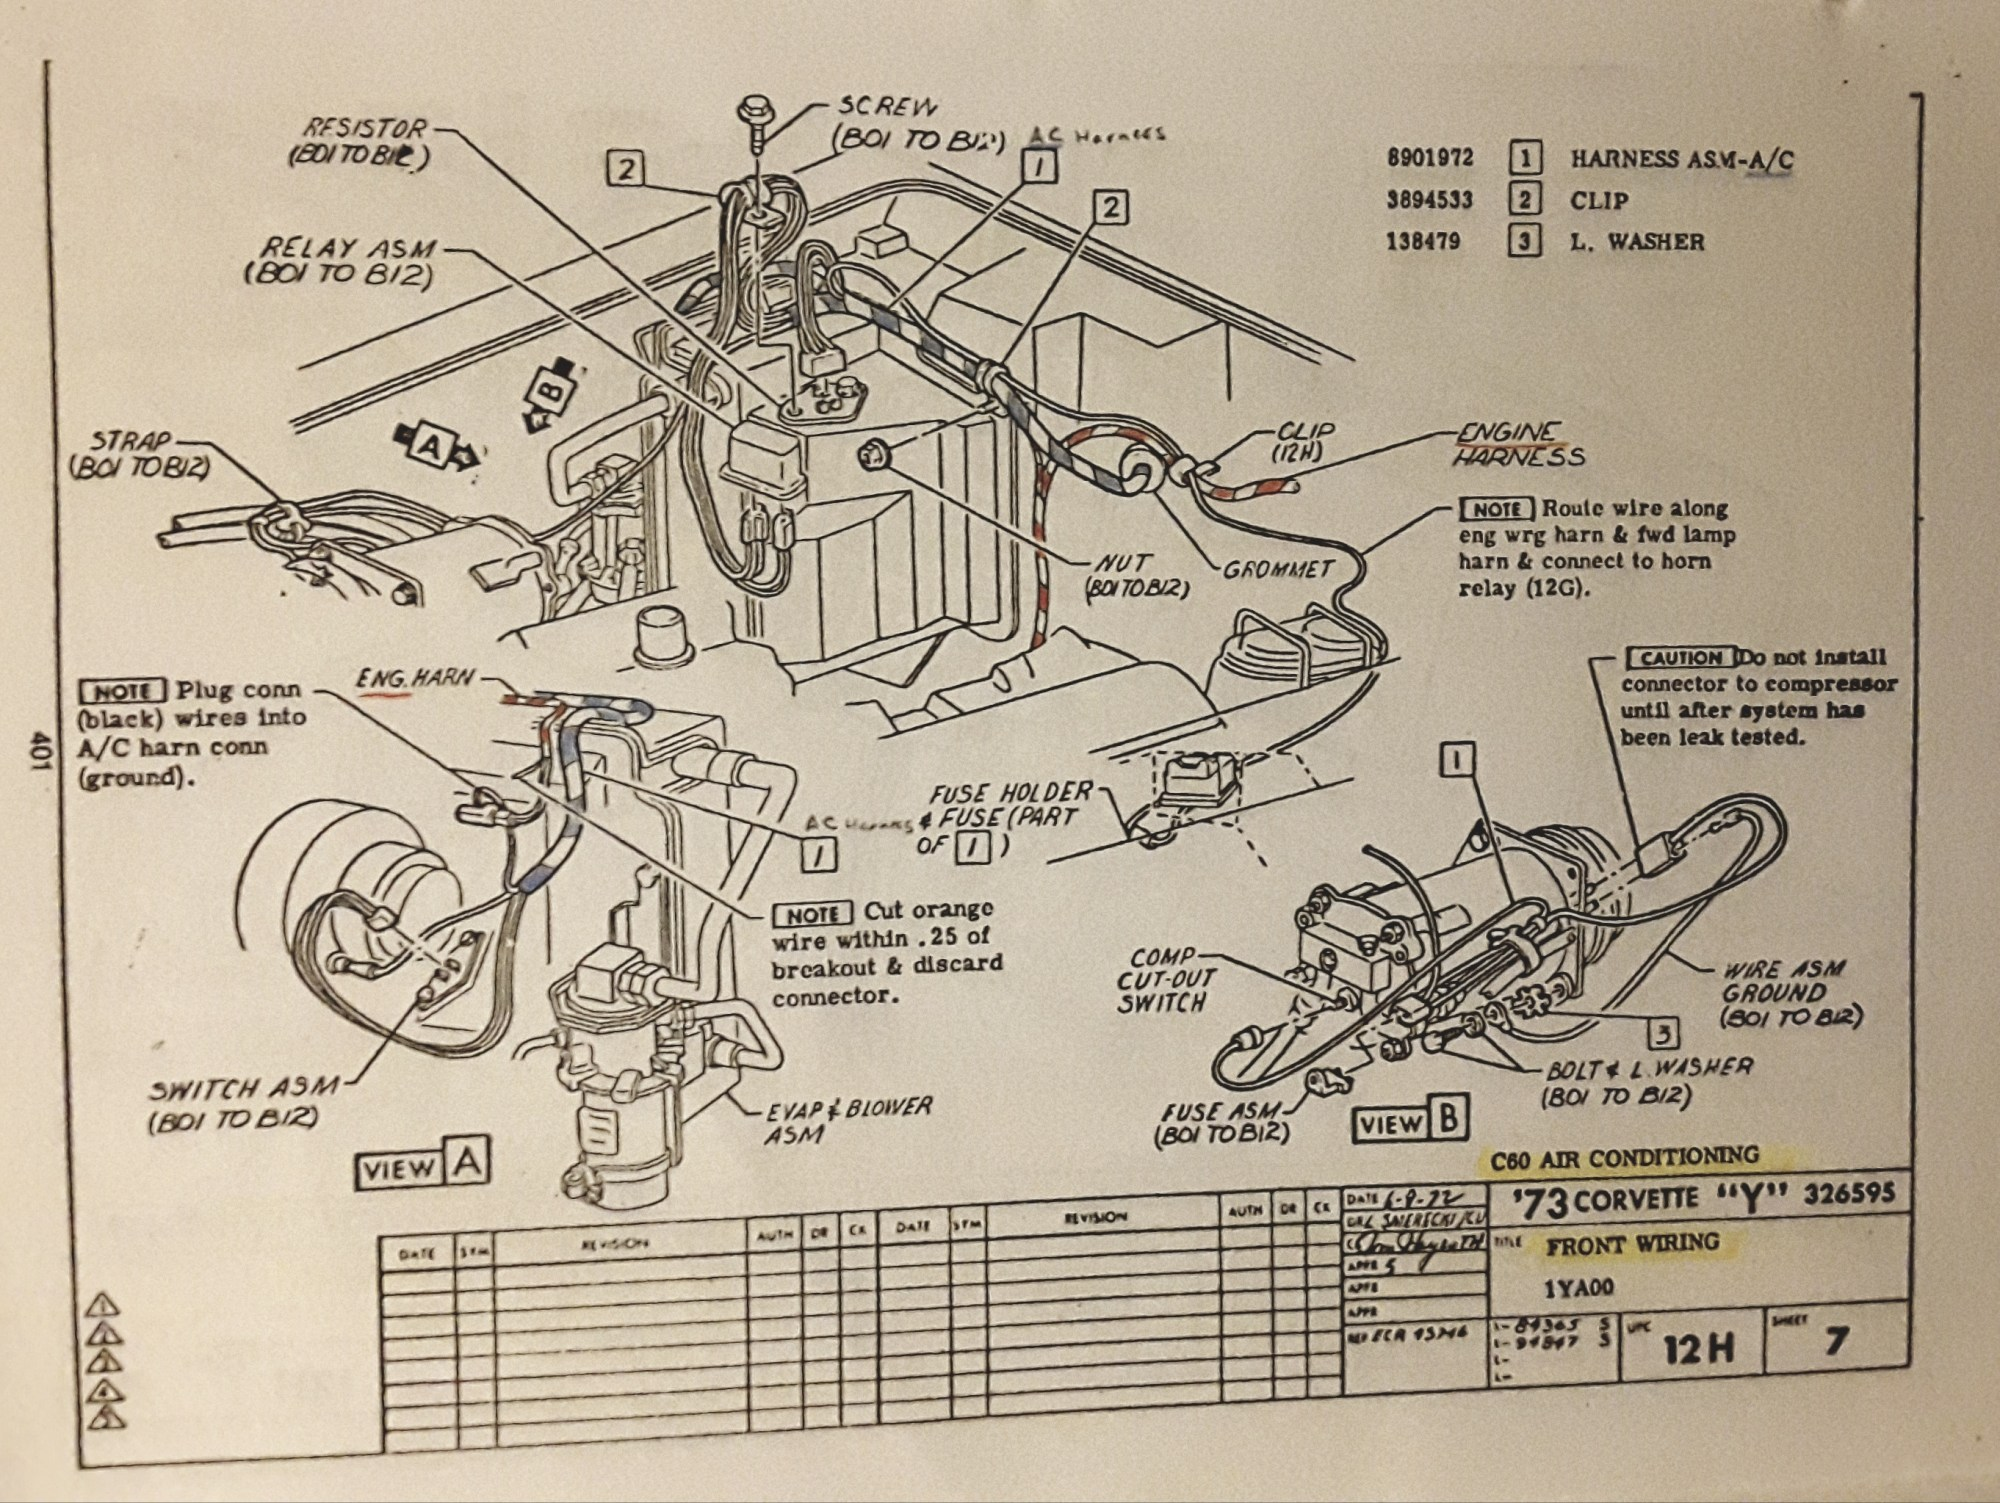 hight resolution of 1972 corvette air conditioning wiring diagram wiring diagram1972 c3 wiring diagram wiring diagrams 1972 corvette air